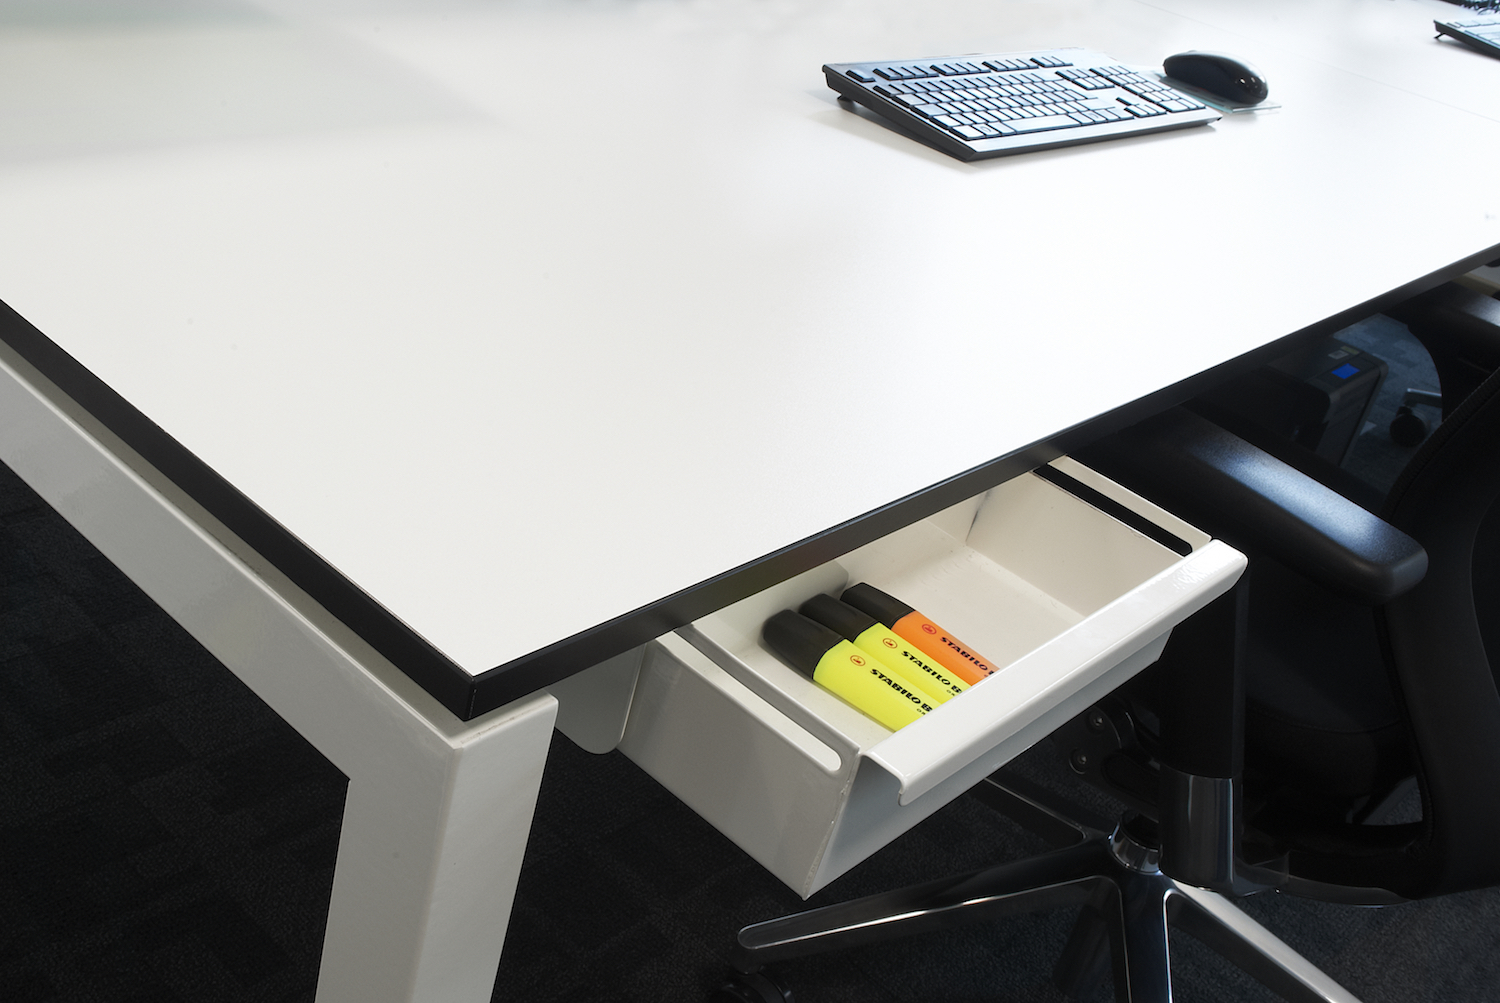 White D50 Bench Desk featuring black contrast edged 18mm top and bespoke integrated pen trays.